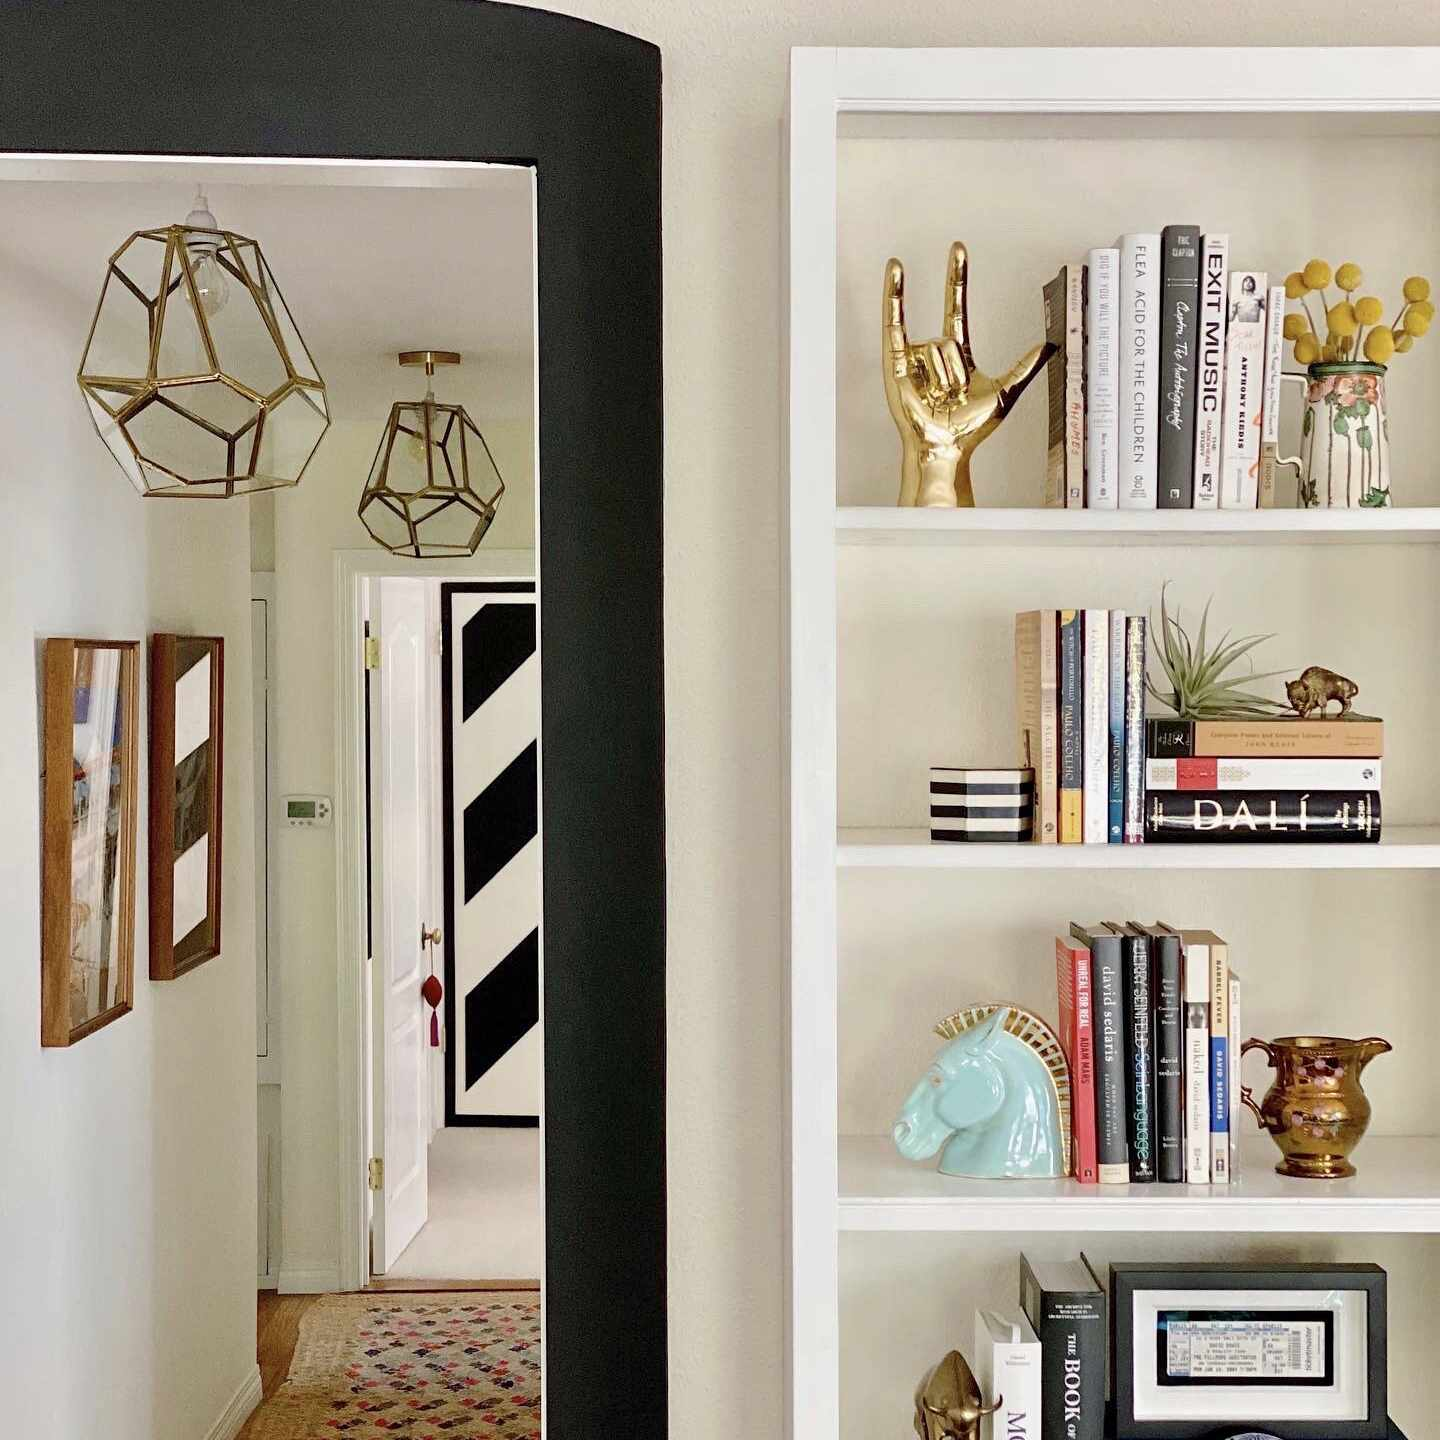 Boho chic styled bookshelf and hallway accented with metallics